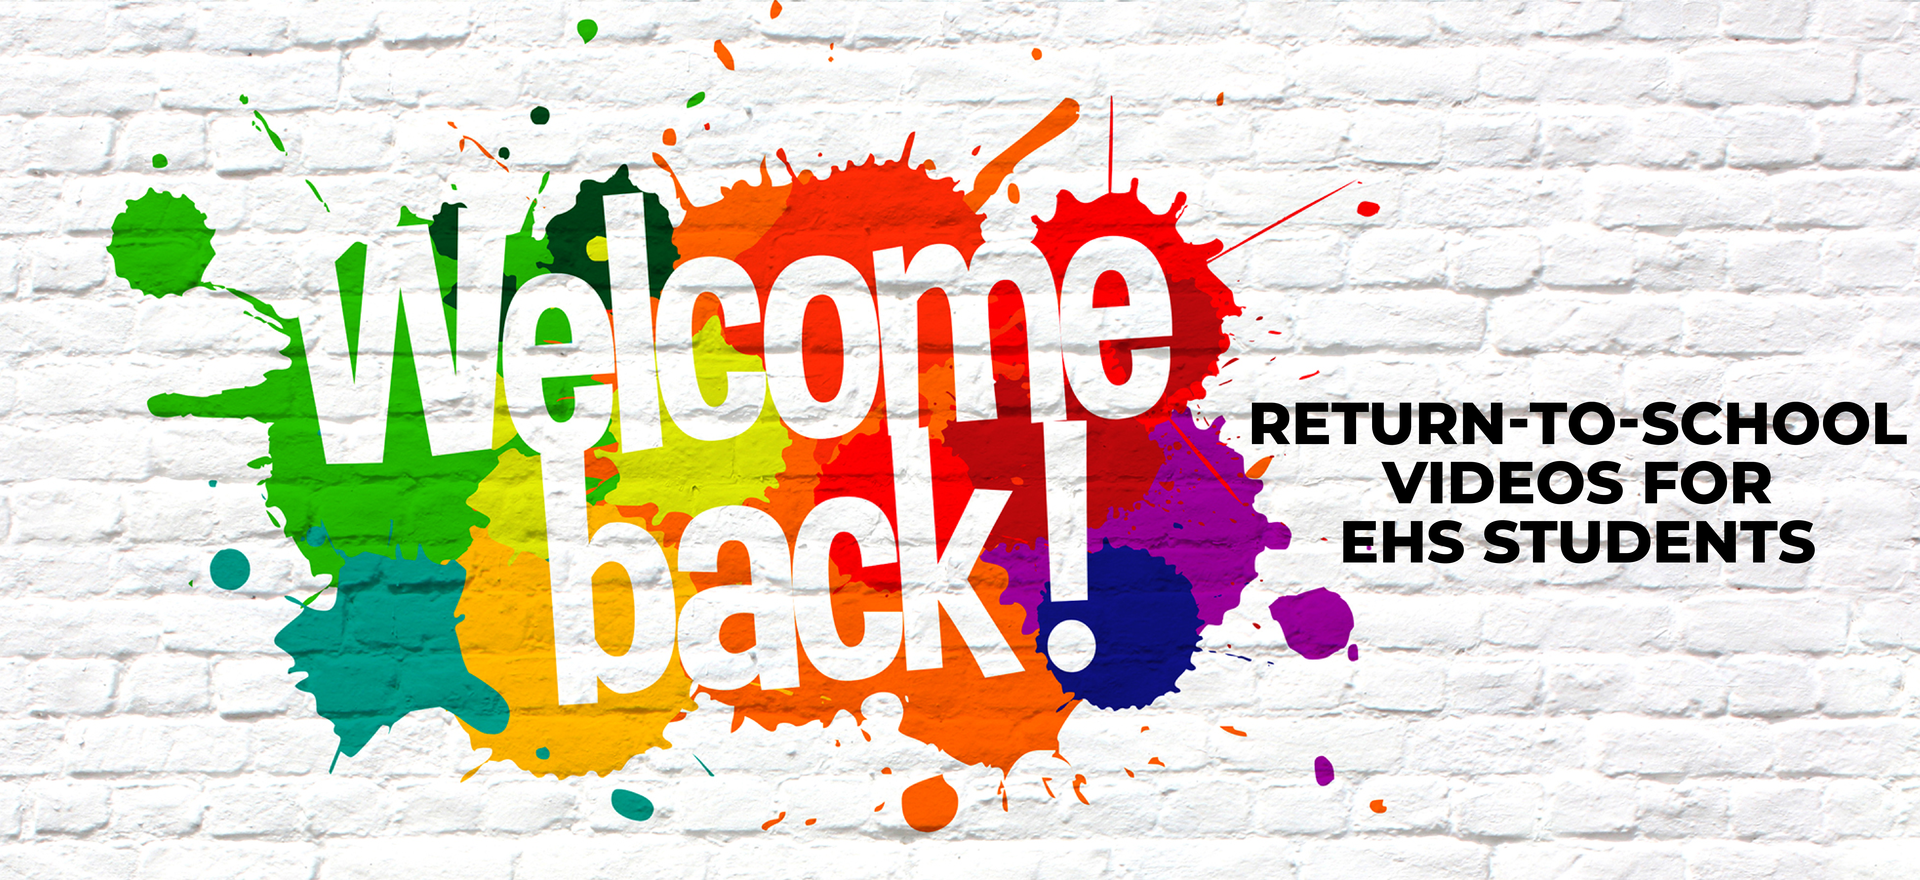 Welcome back concept, colorful paint blots against a white brick background